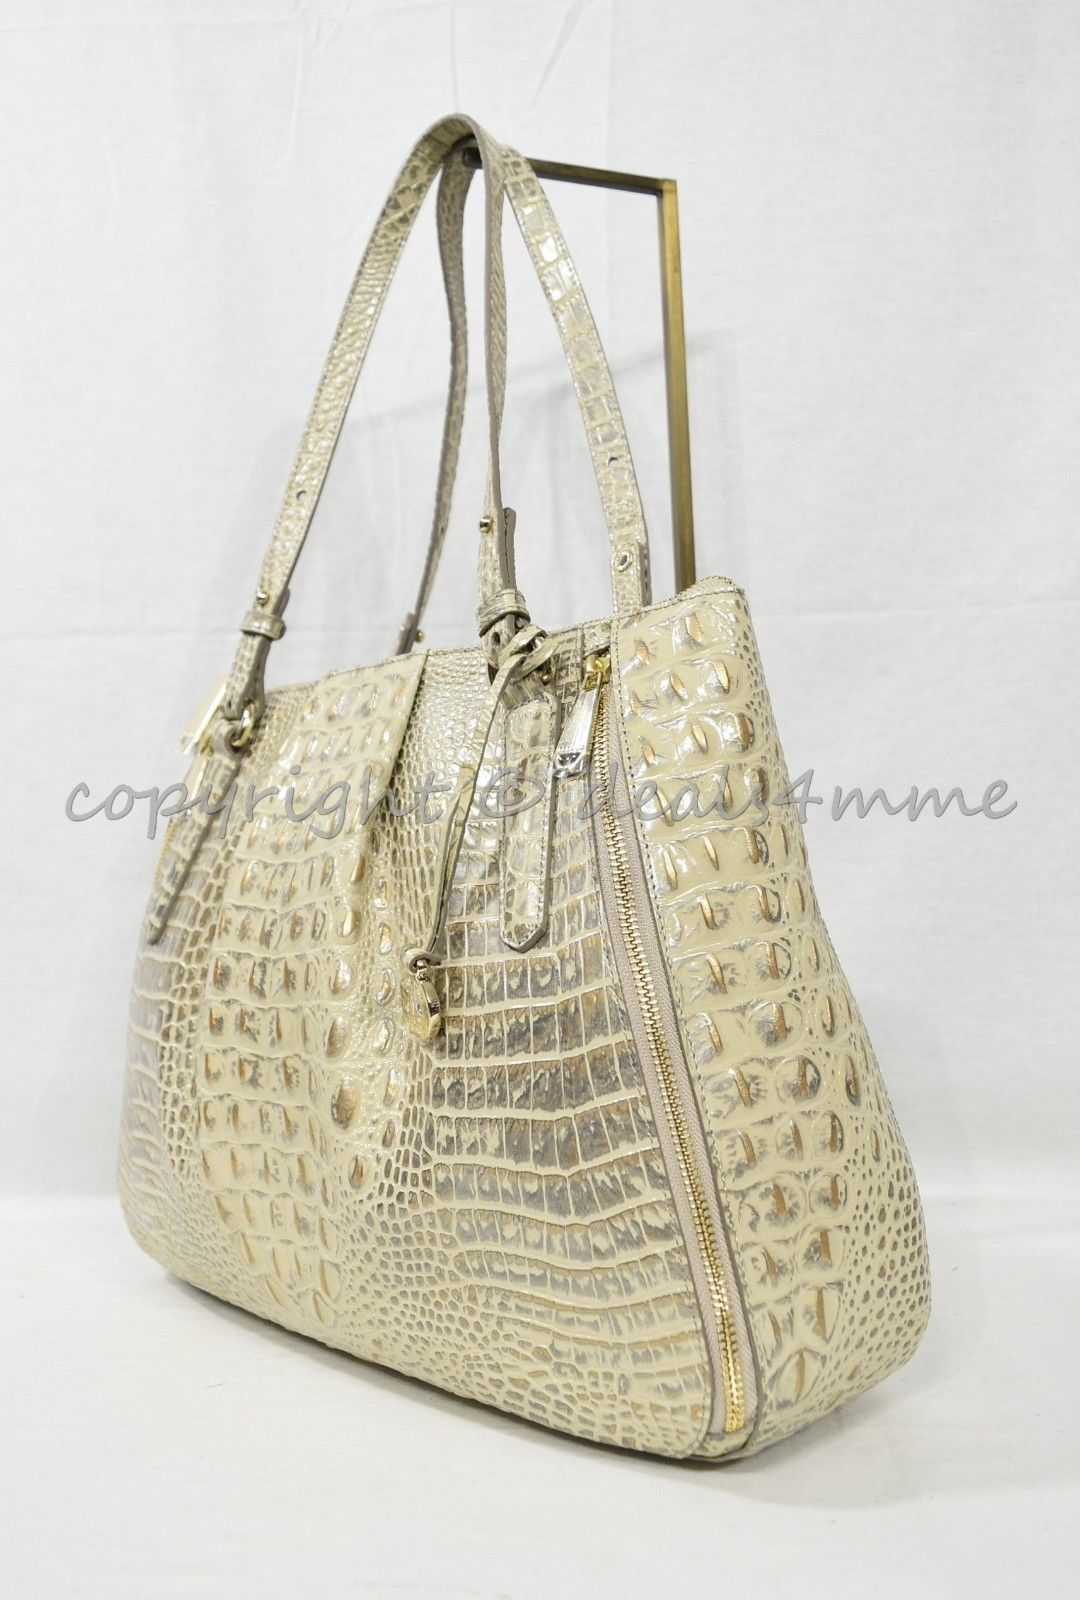 NWT Brahmin Adina Leather Tote/Shoulder Bag in Silver Birch Melbourne image 3